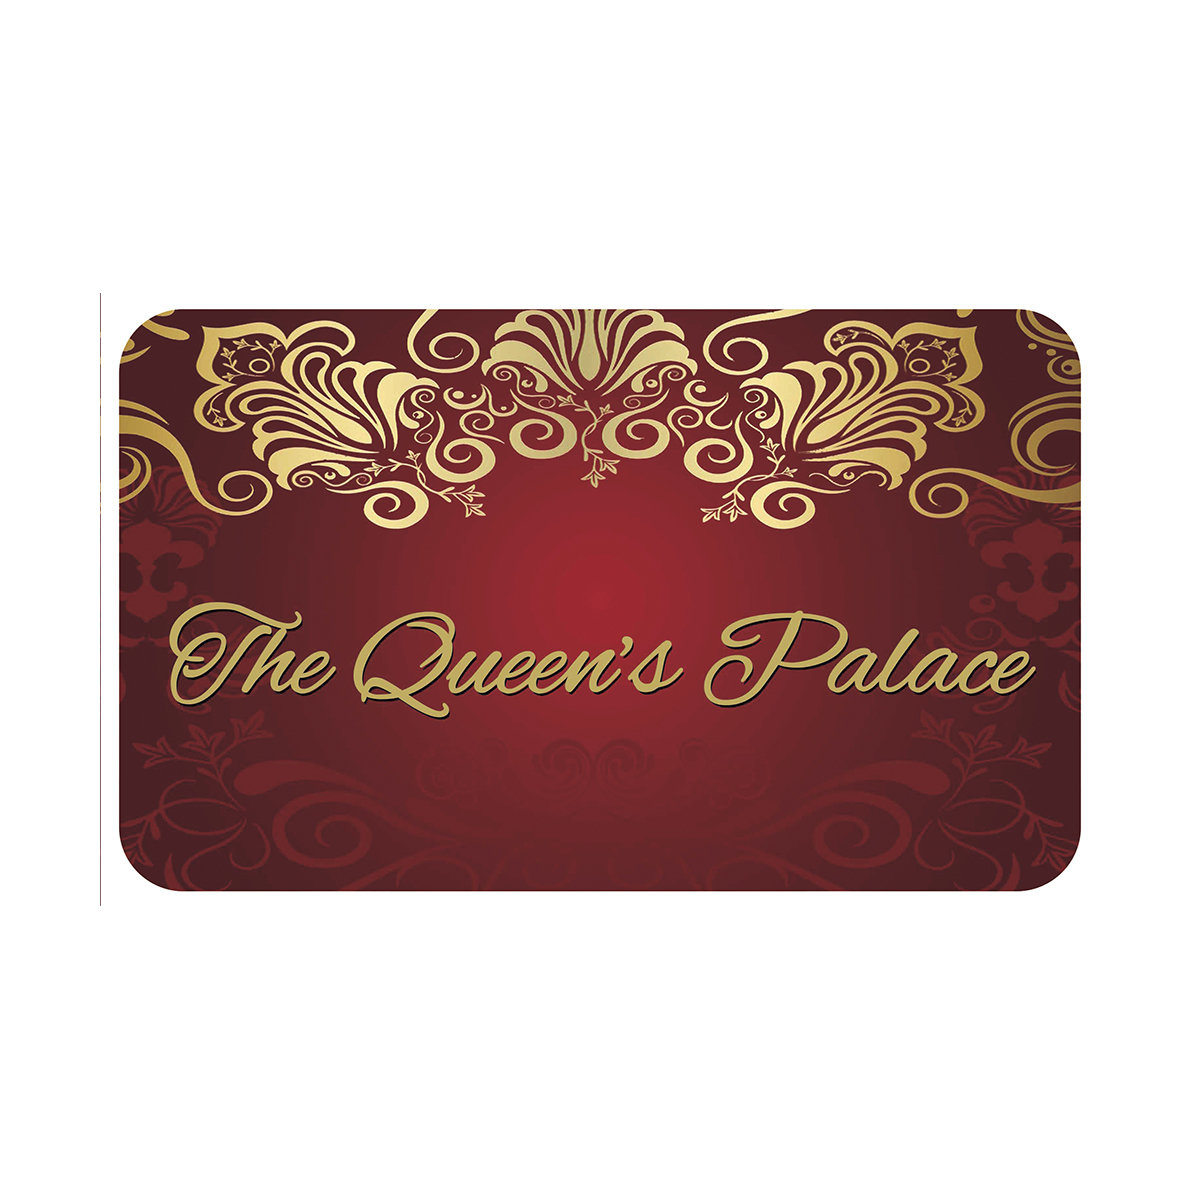 THE QUEEN'S PALACE